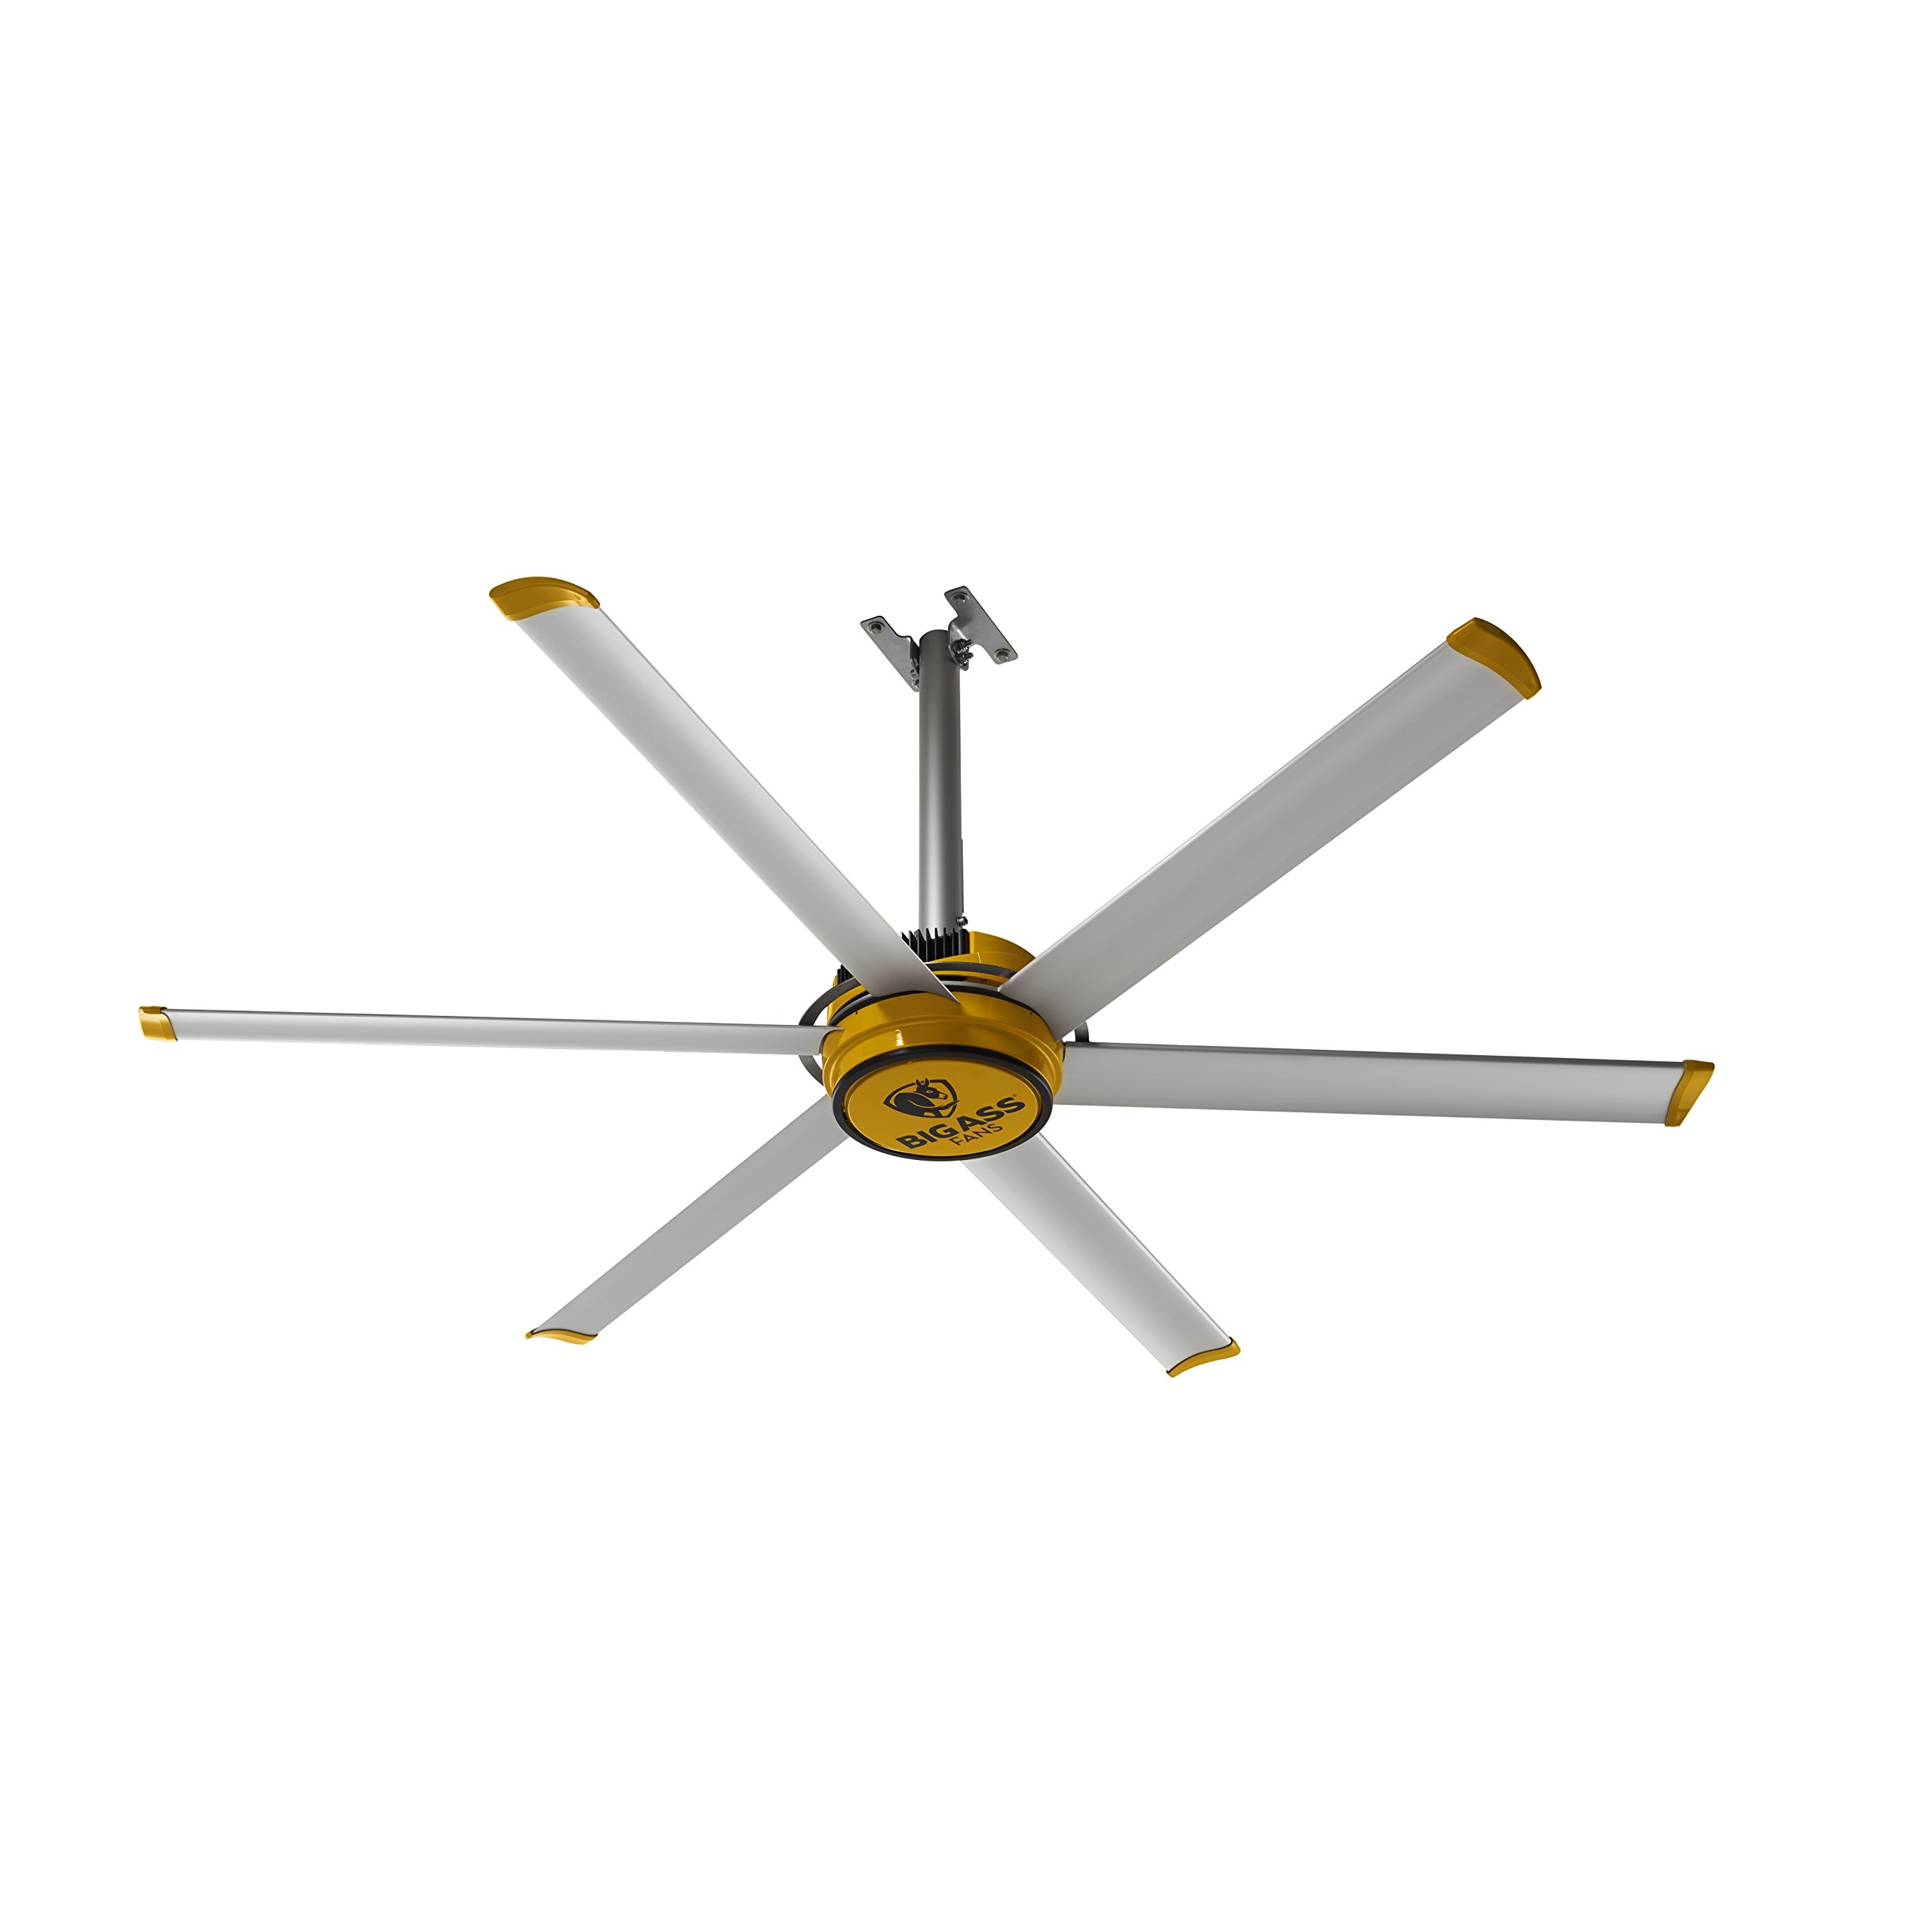 CDM product Big Ass Fans 2025 Silver and Yellow Shop Ceiling Fan, 7-ft, big image